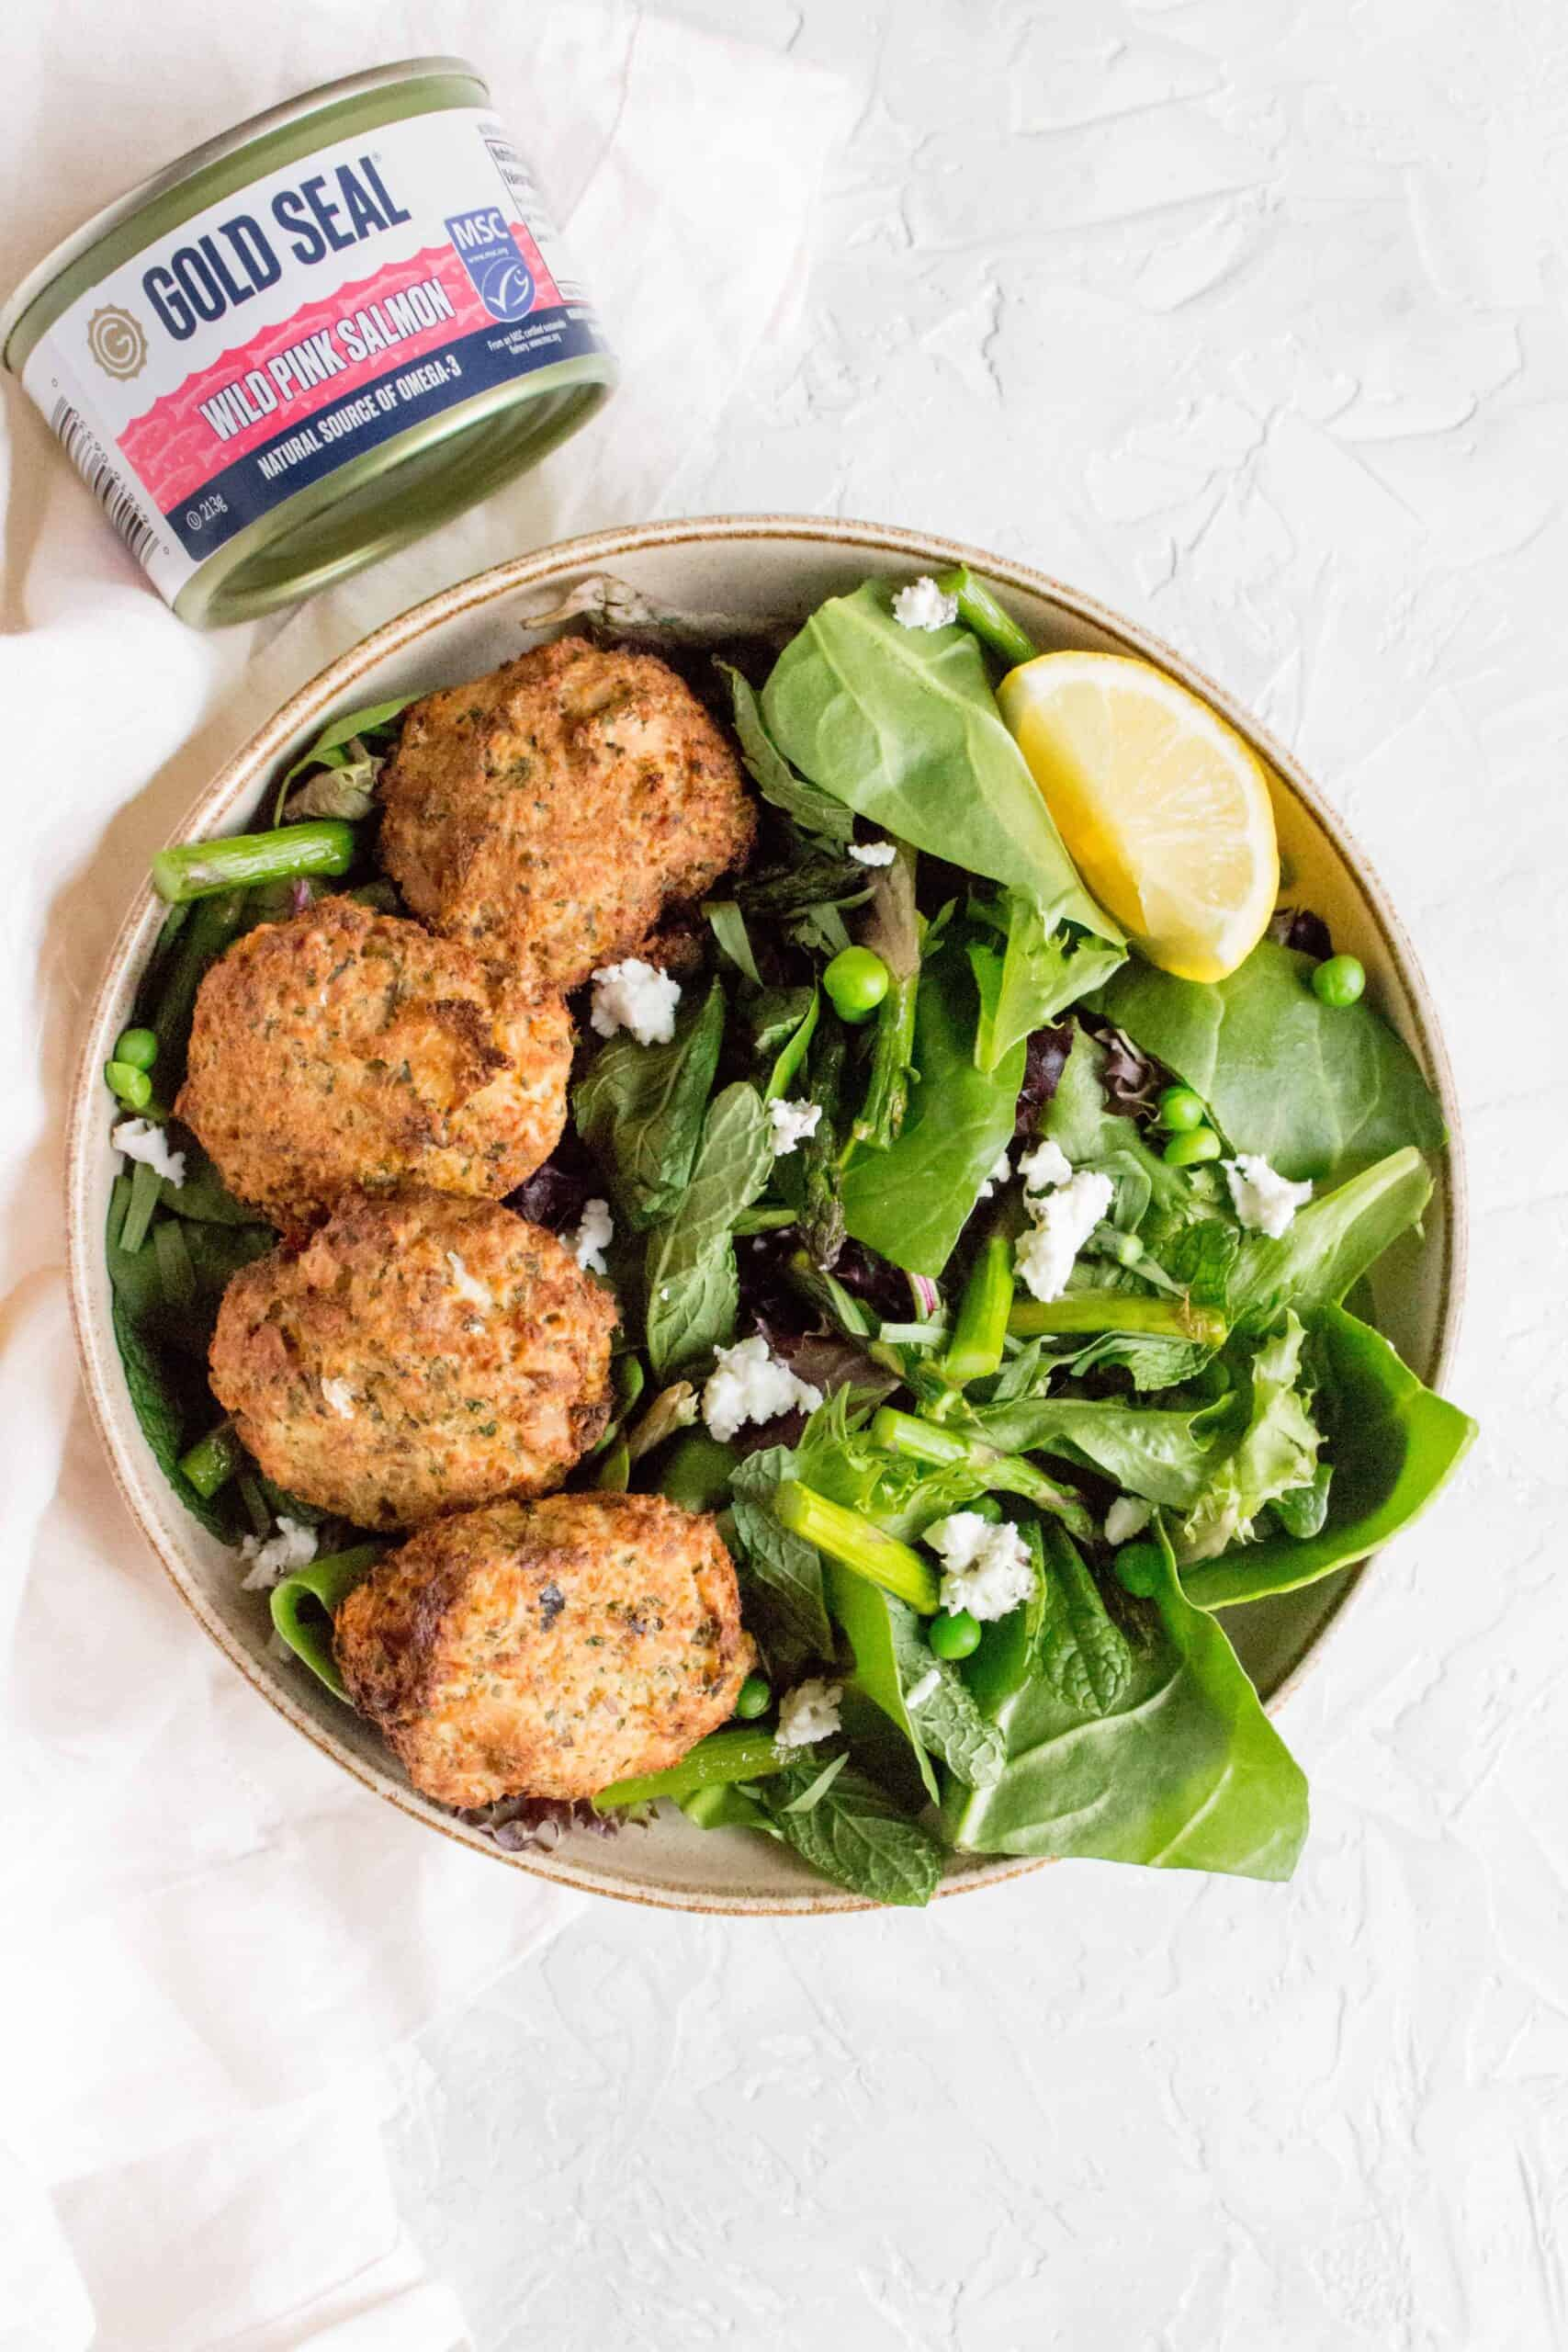 This Salmon Patties with Spring Salad is super easy to make and only takes a couple minutes to put together. Full of good and simple ingredients, this is an easy recipe to whip up in a pinch!